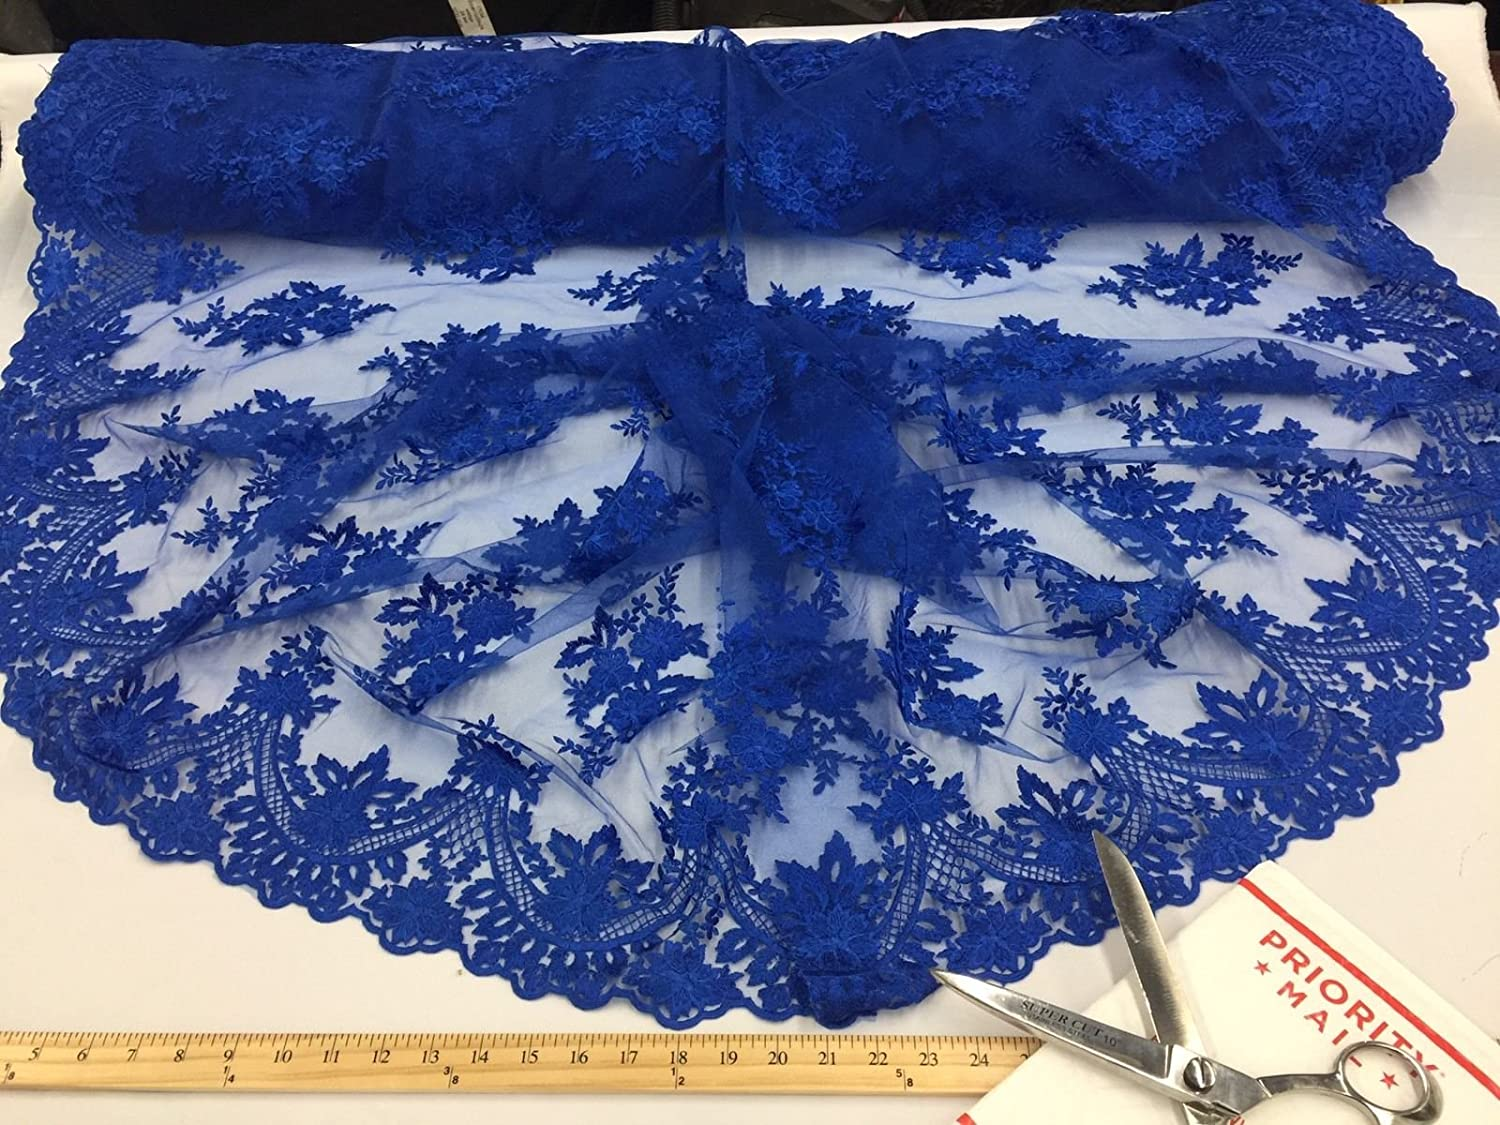 Lace Fabric By The Yard - Royal Blue Embroidered Mesh Flower Bridal Wedding Dress Lace - French Design Metatron Acoustics